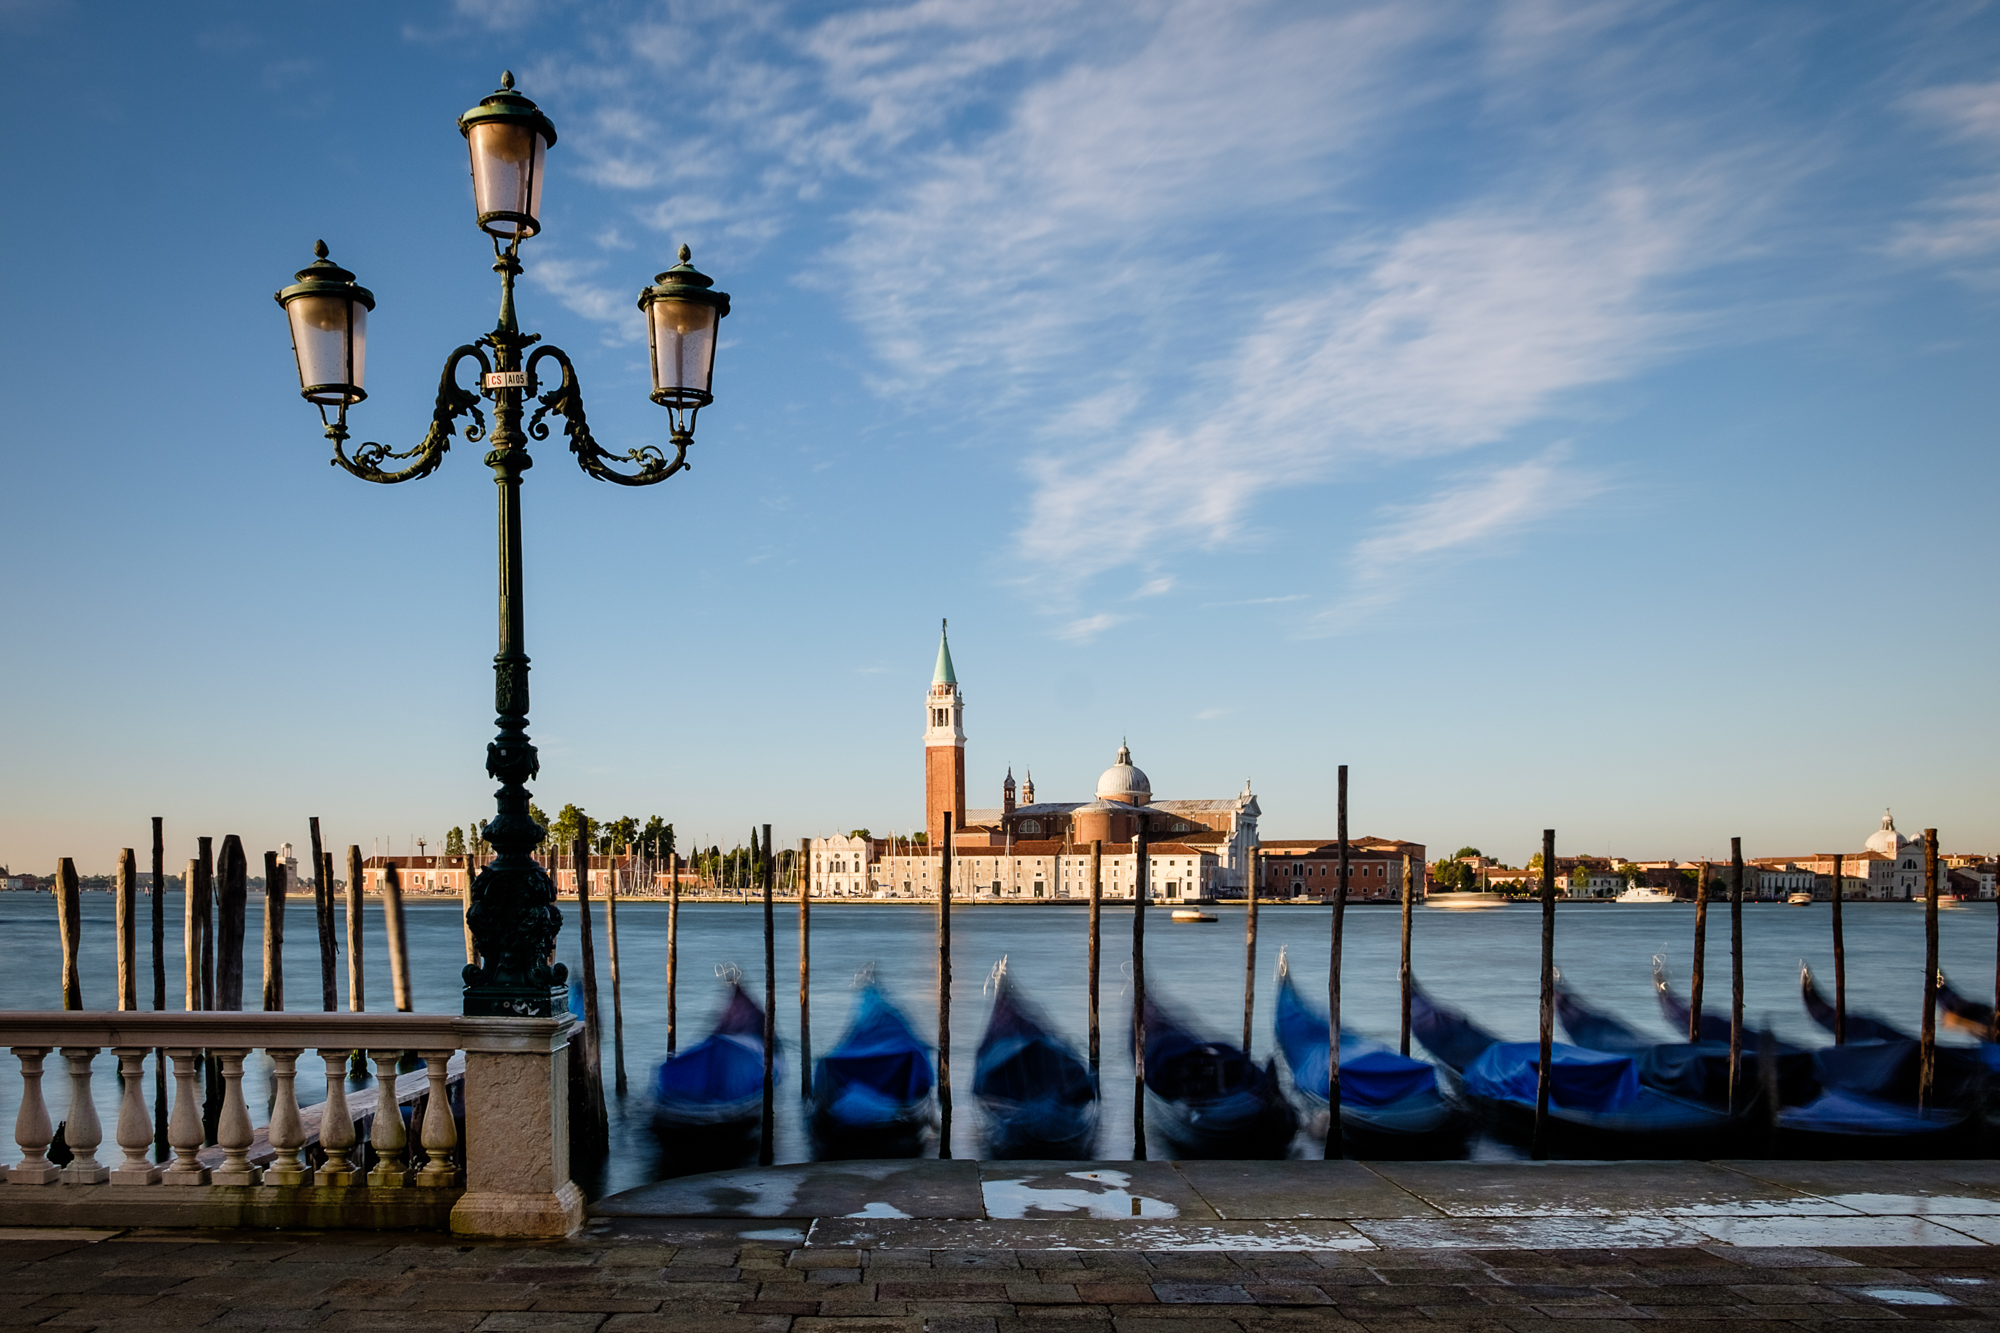 Photo of moored gondolas on the Bacino San Marco in Venice taken by Trevor Sherwin